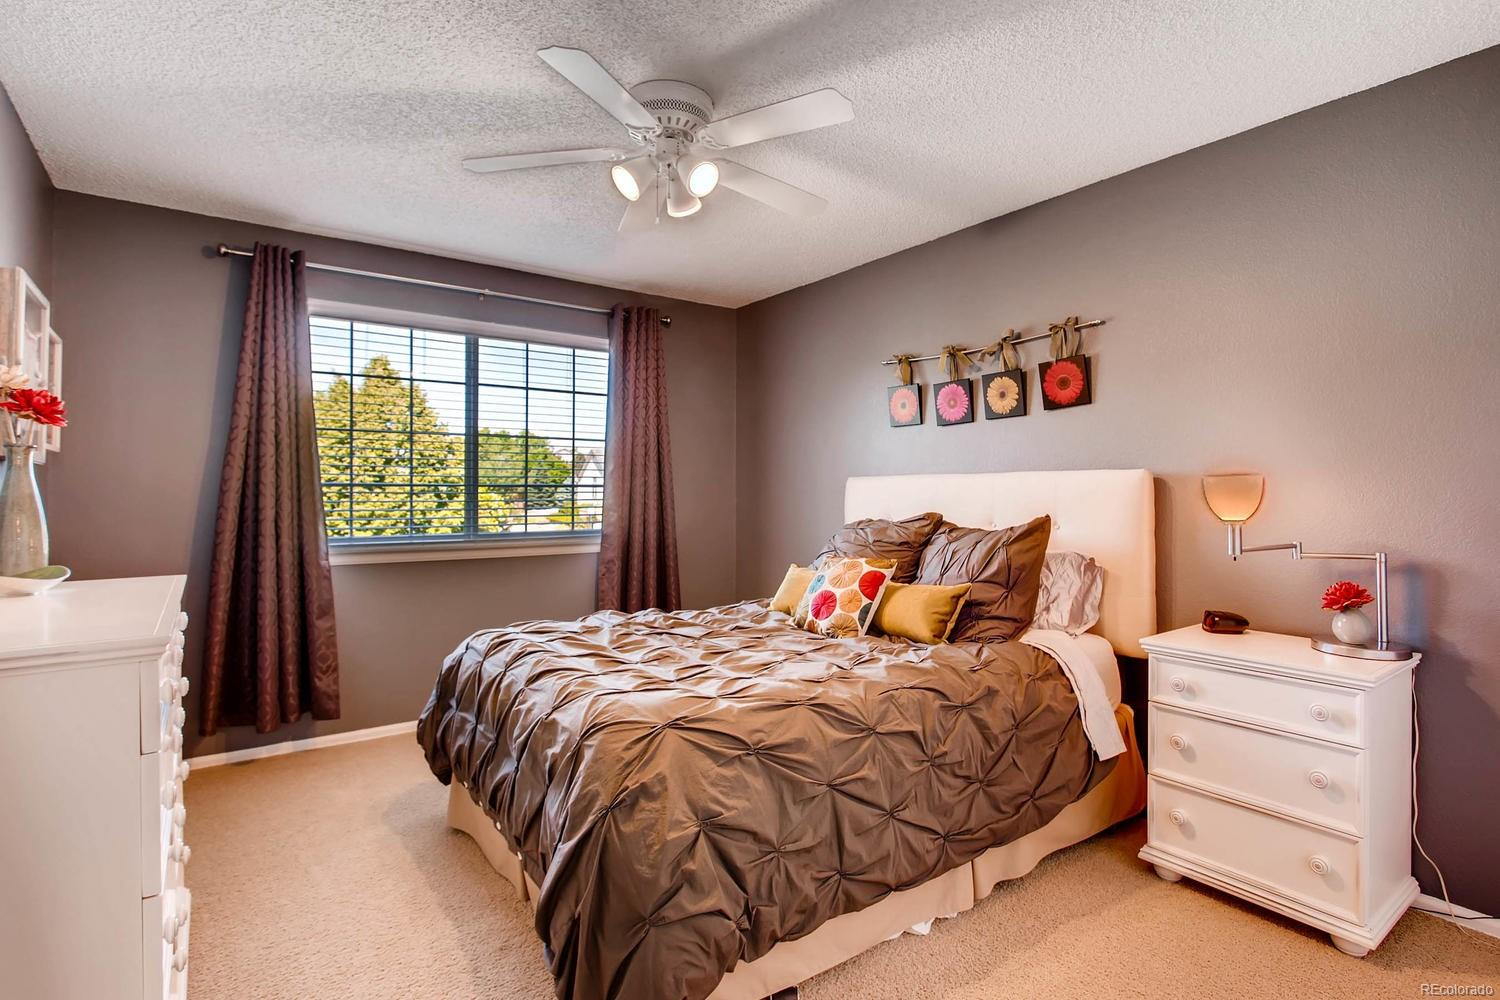 Generously sized secondary bedrooms 13' x 11'